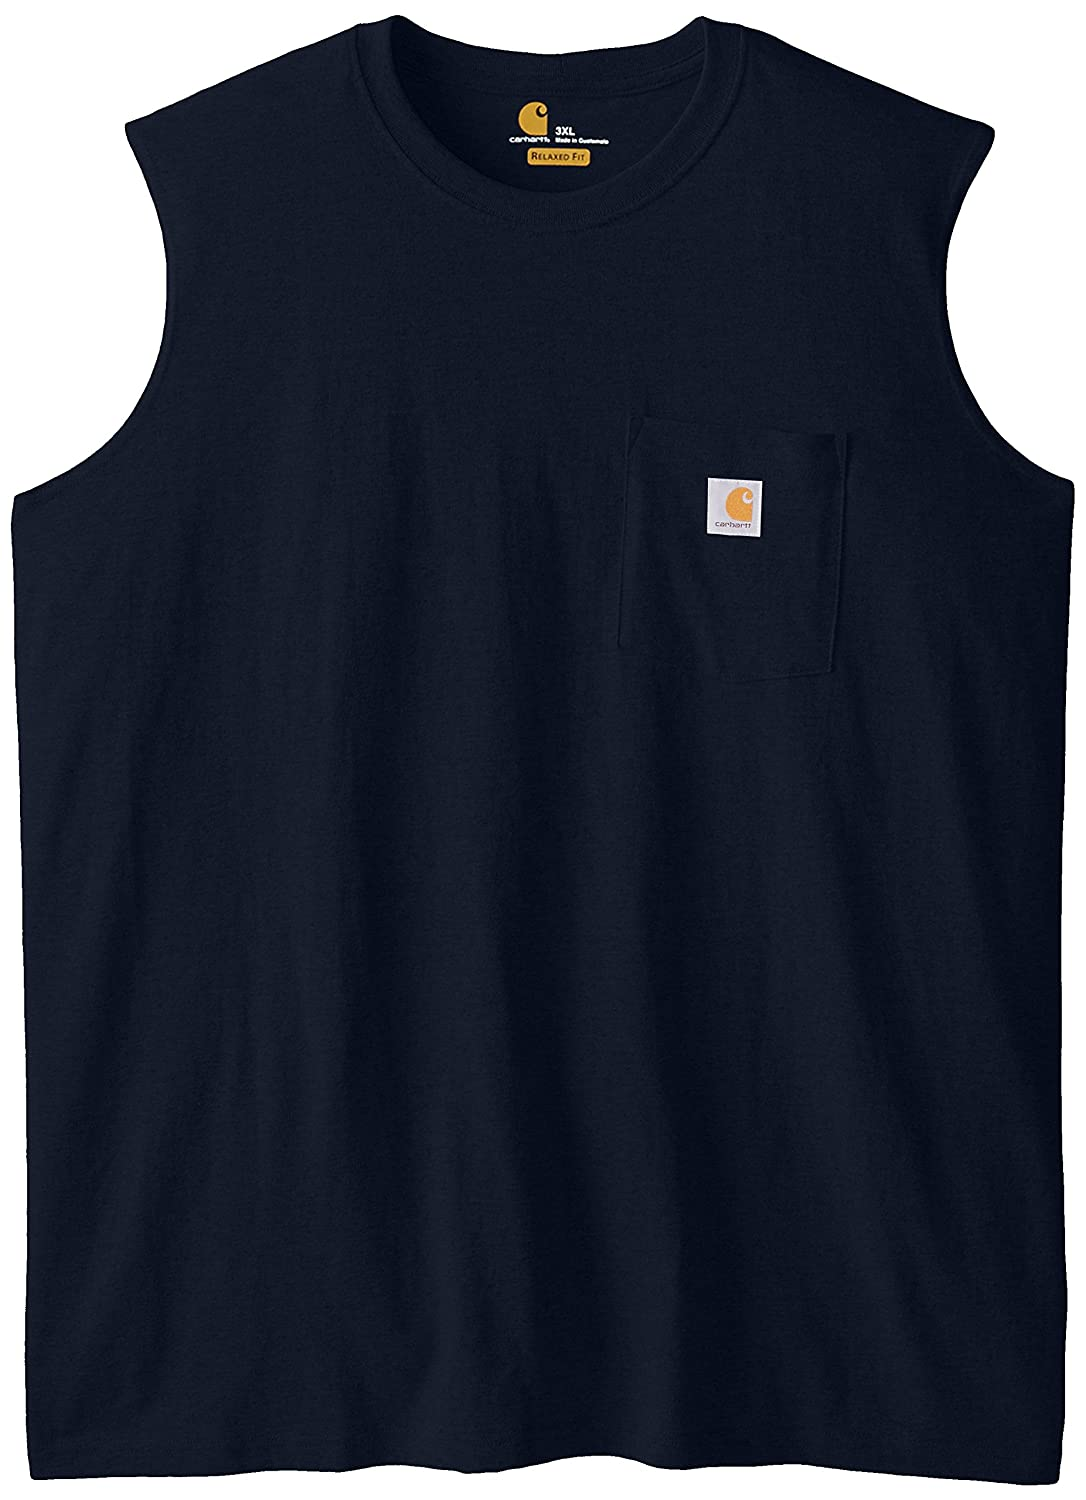 Carhartt Men's Big & Tall Workwear Pocket Sleeveless Midweight T-Shirt Relaxed Fit Carhartt Sportswear - Mens 100374